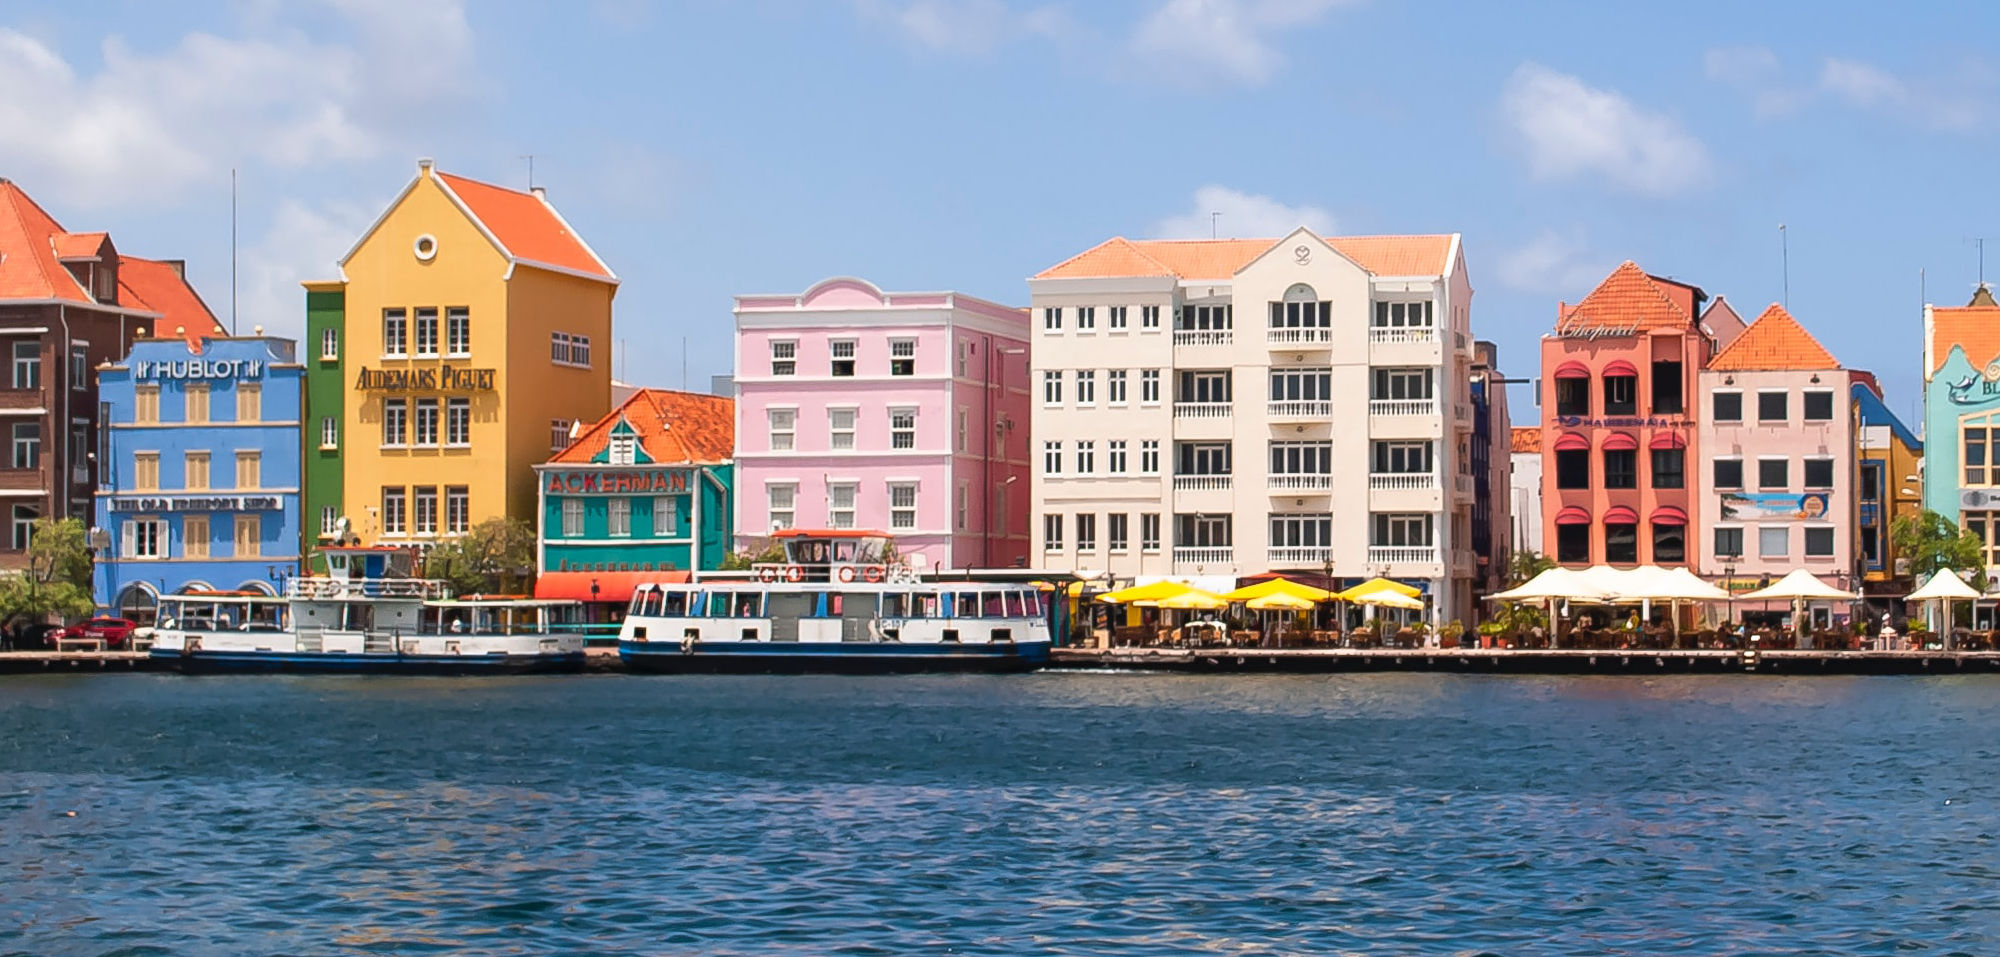 CURAÇAO ISLAND, CARIBBEAN - Baseball (October 30th - November 6th 2021)